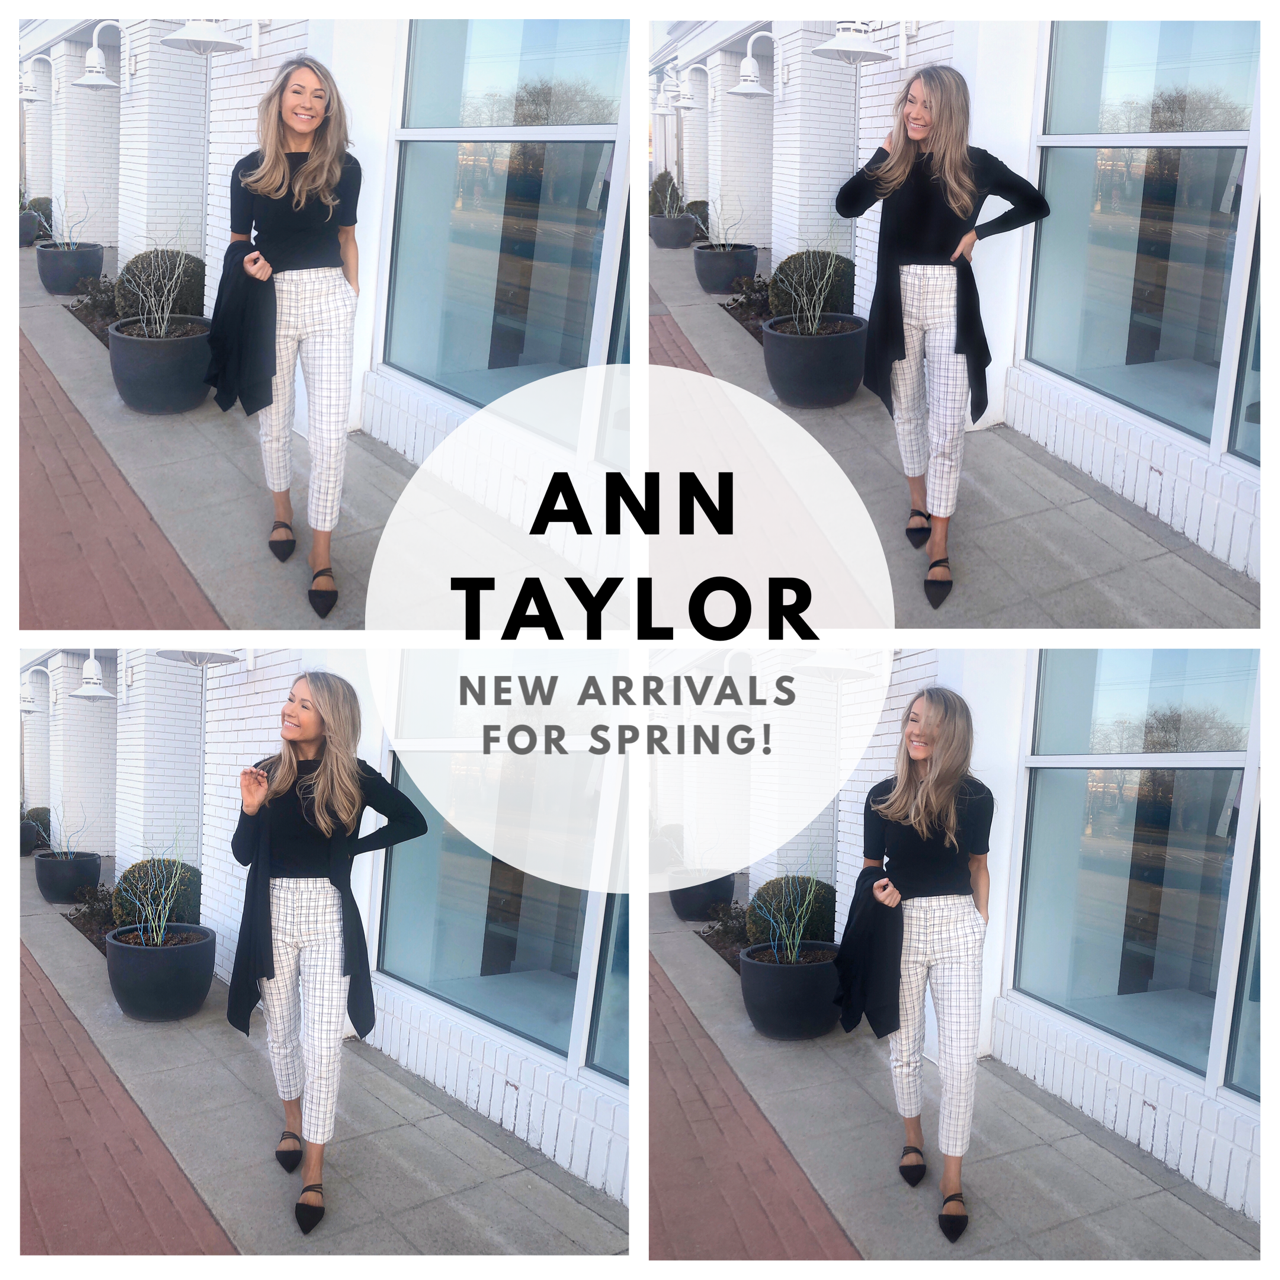 Ann Taylor New Arrivals For Spring!